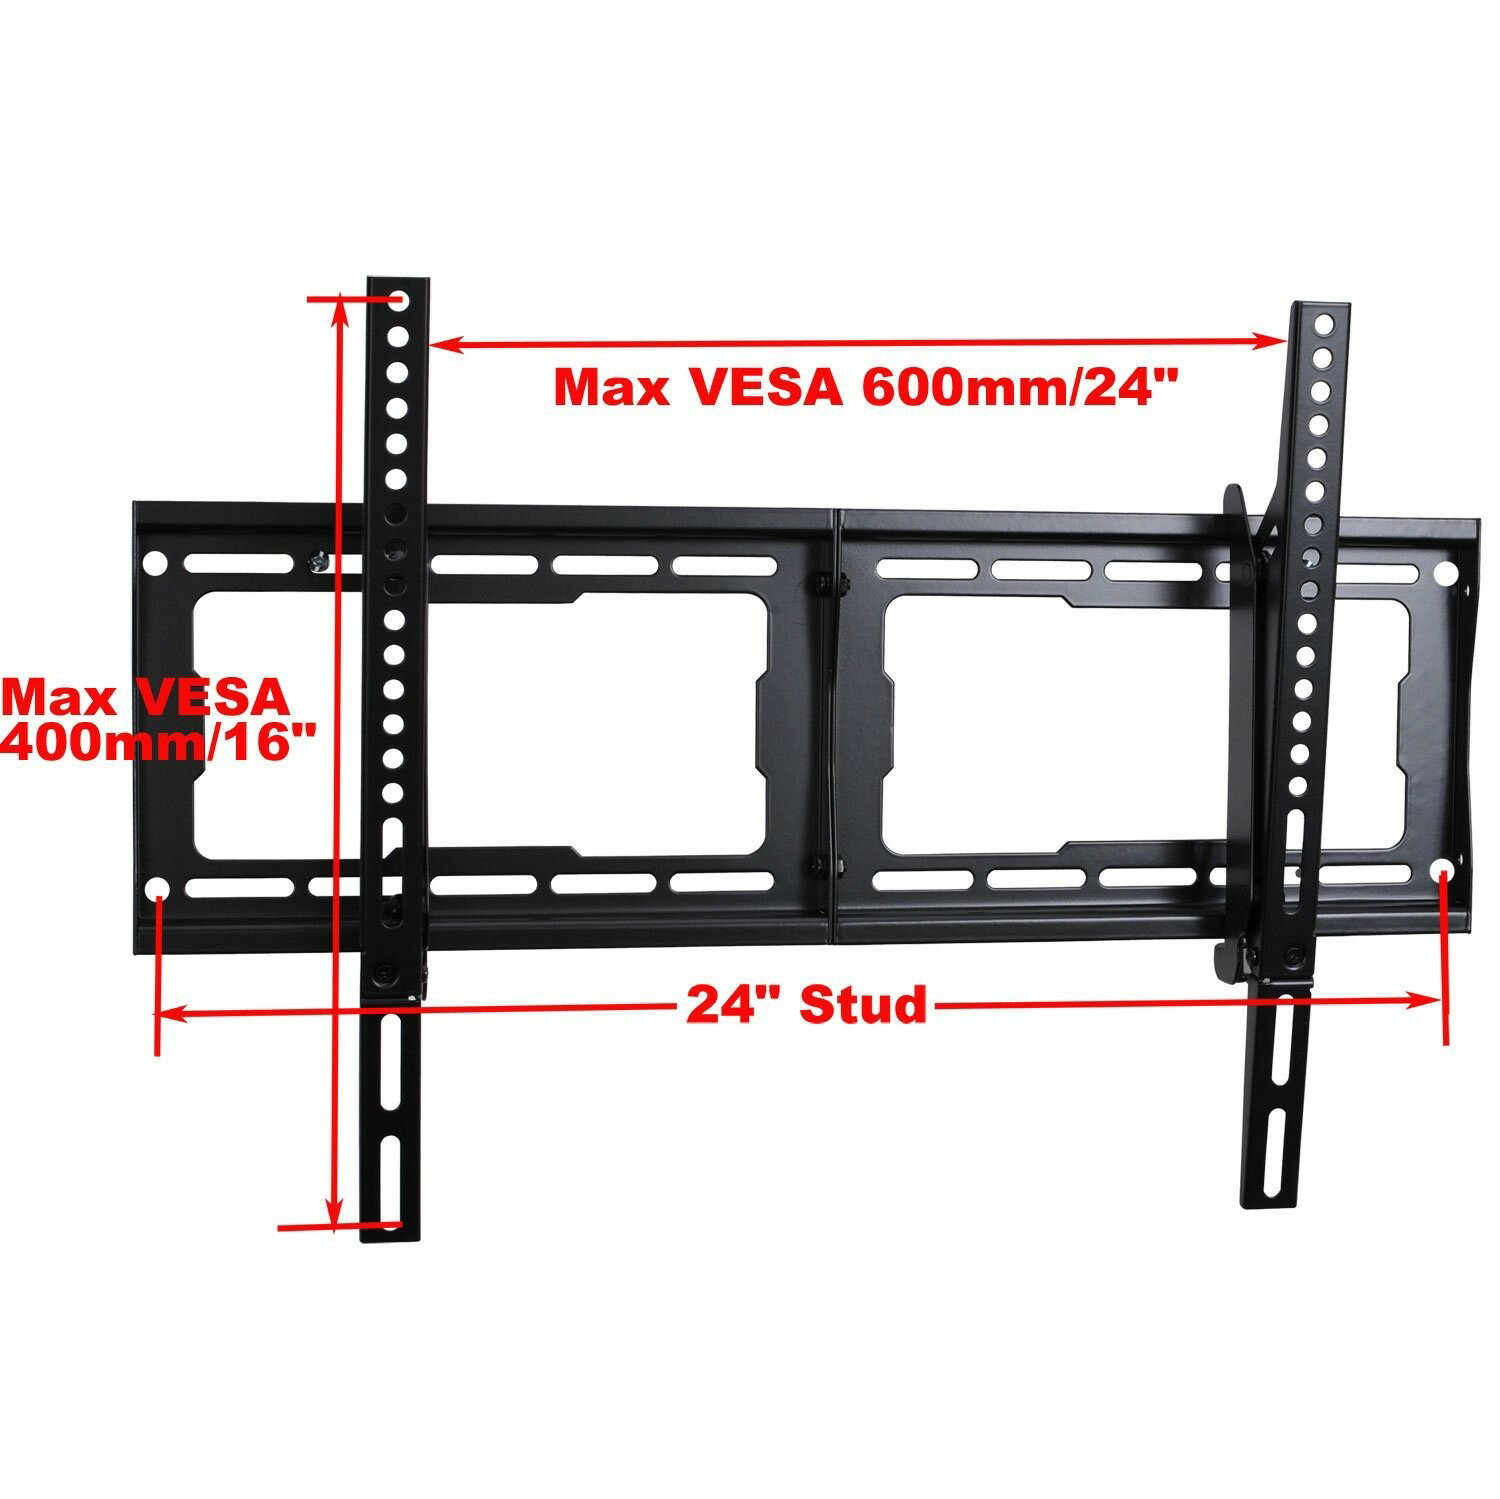 """VideoSecu One Touch Tilt TV Wall Mount Bracket for most 24 27 32 37 39 40 42 46 47 50 55 57 58 60 64 65 70"""" LCD LED HDTV UHD Plasma Flat Panel Displays with VESA 600x400 /400x400mm  Free 10ft HDMI Cable & Bubble Level MDA 1"""